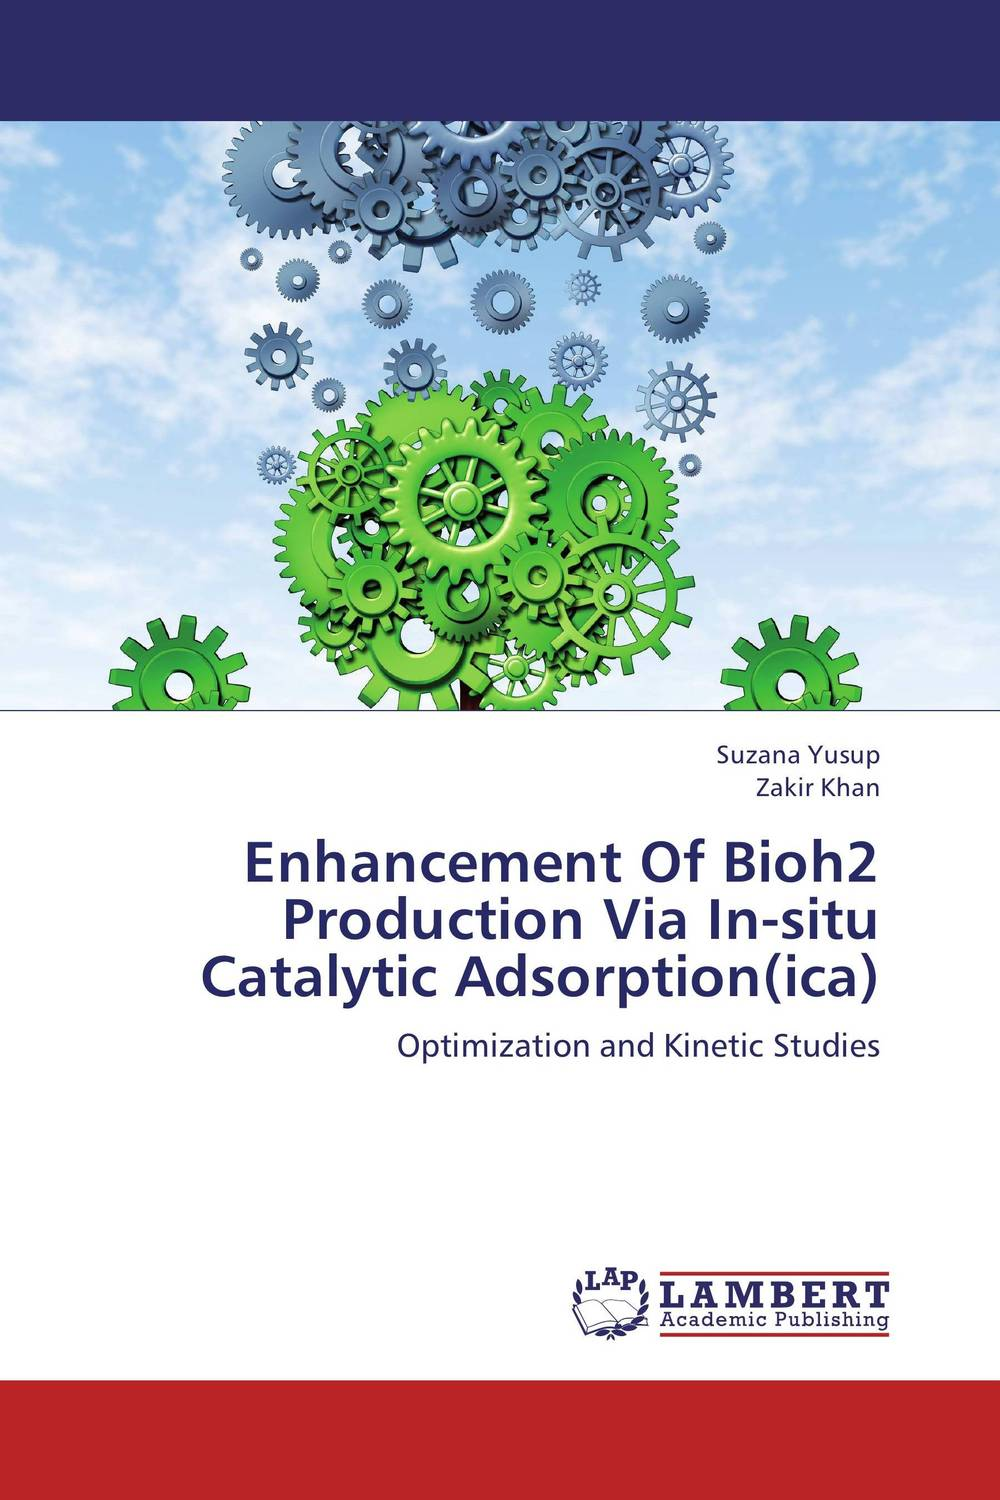 Enhancement Of Bioh2 Production Via In-situ Catalytic Adsorption(ica) hydrogen production through combined pyrolysis and steam gasification